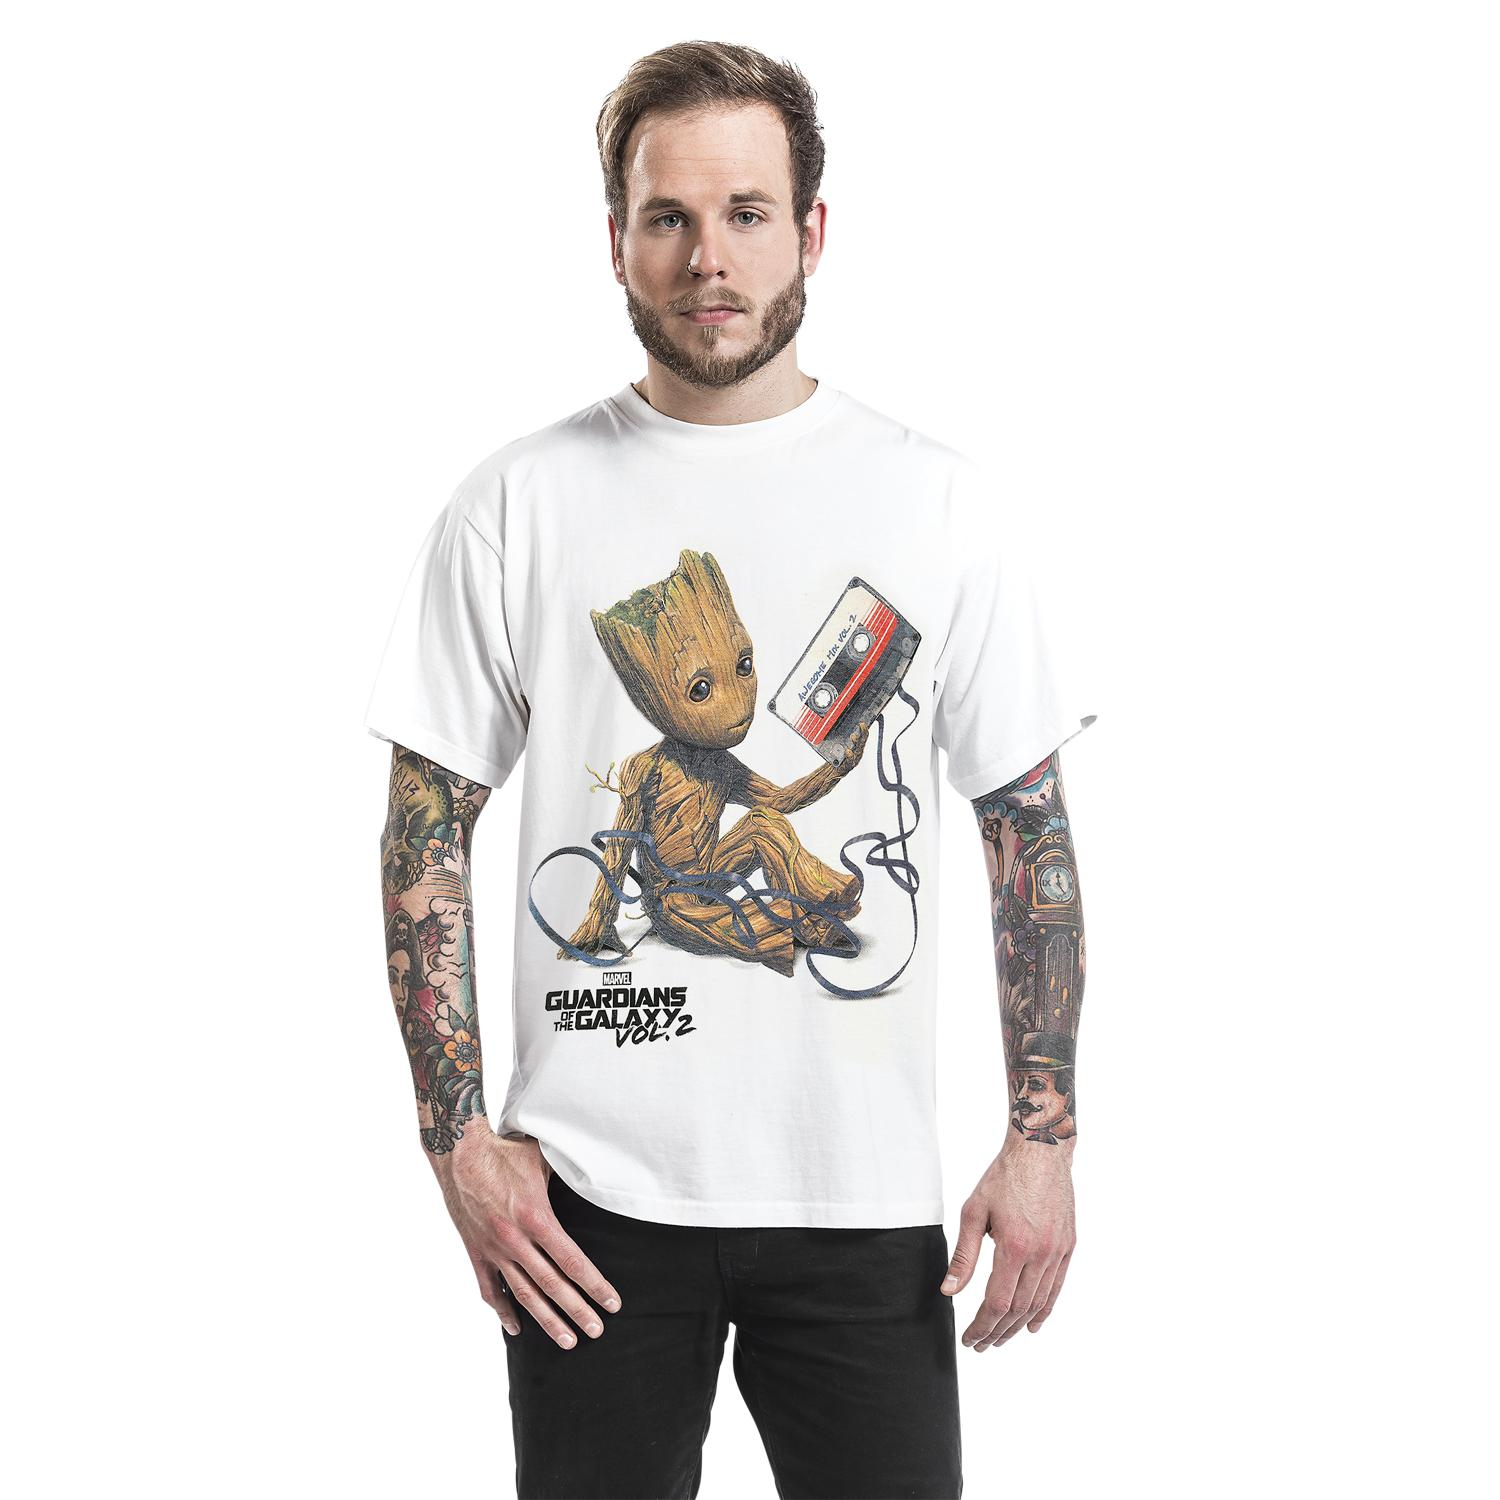 Groot & Tape T-shirt Design man